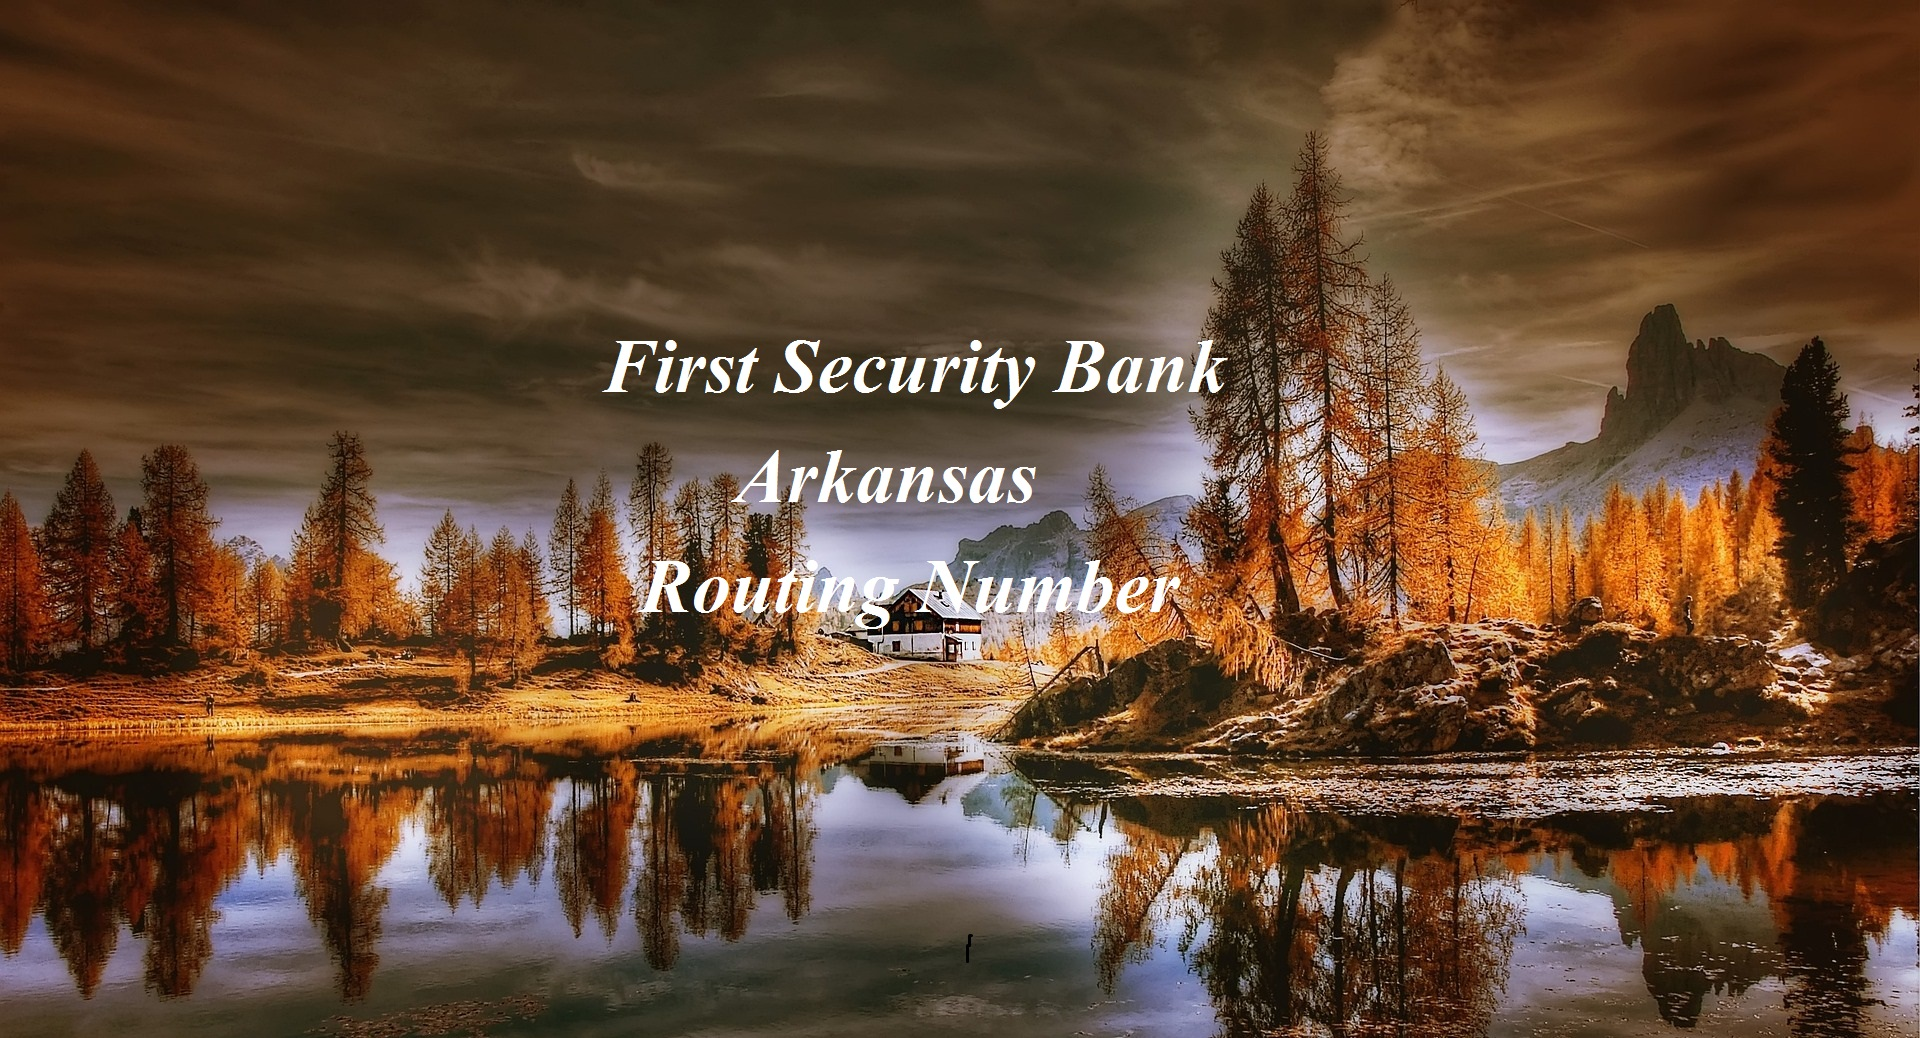 First Security Bank Arkansas Routing Number